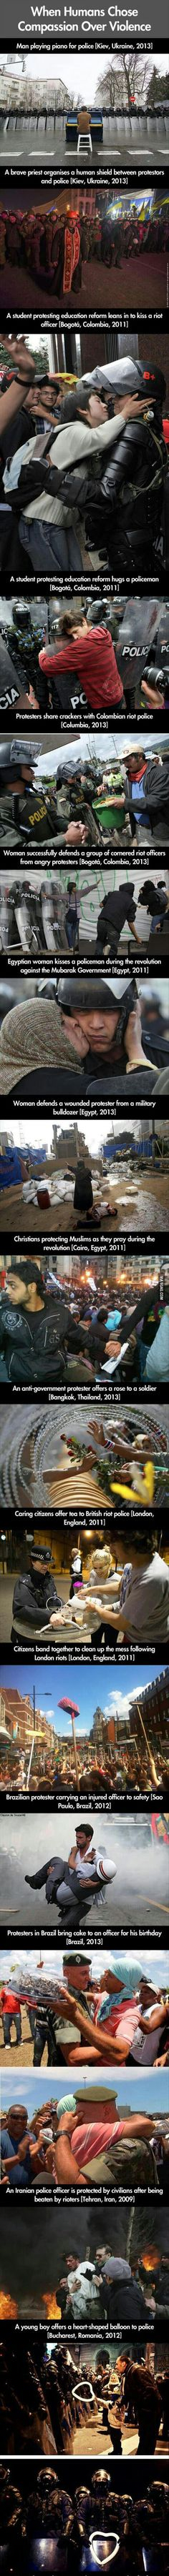 When Human Chose Compassion Over Violence... These pictures brighten up my day - 9GAG